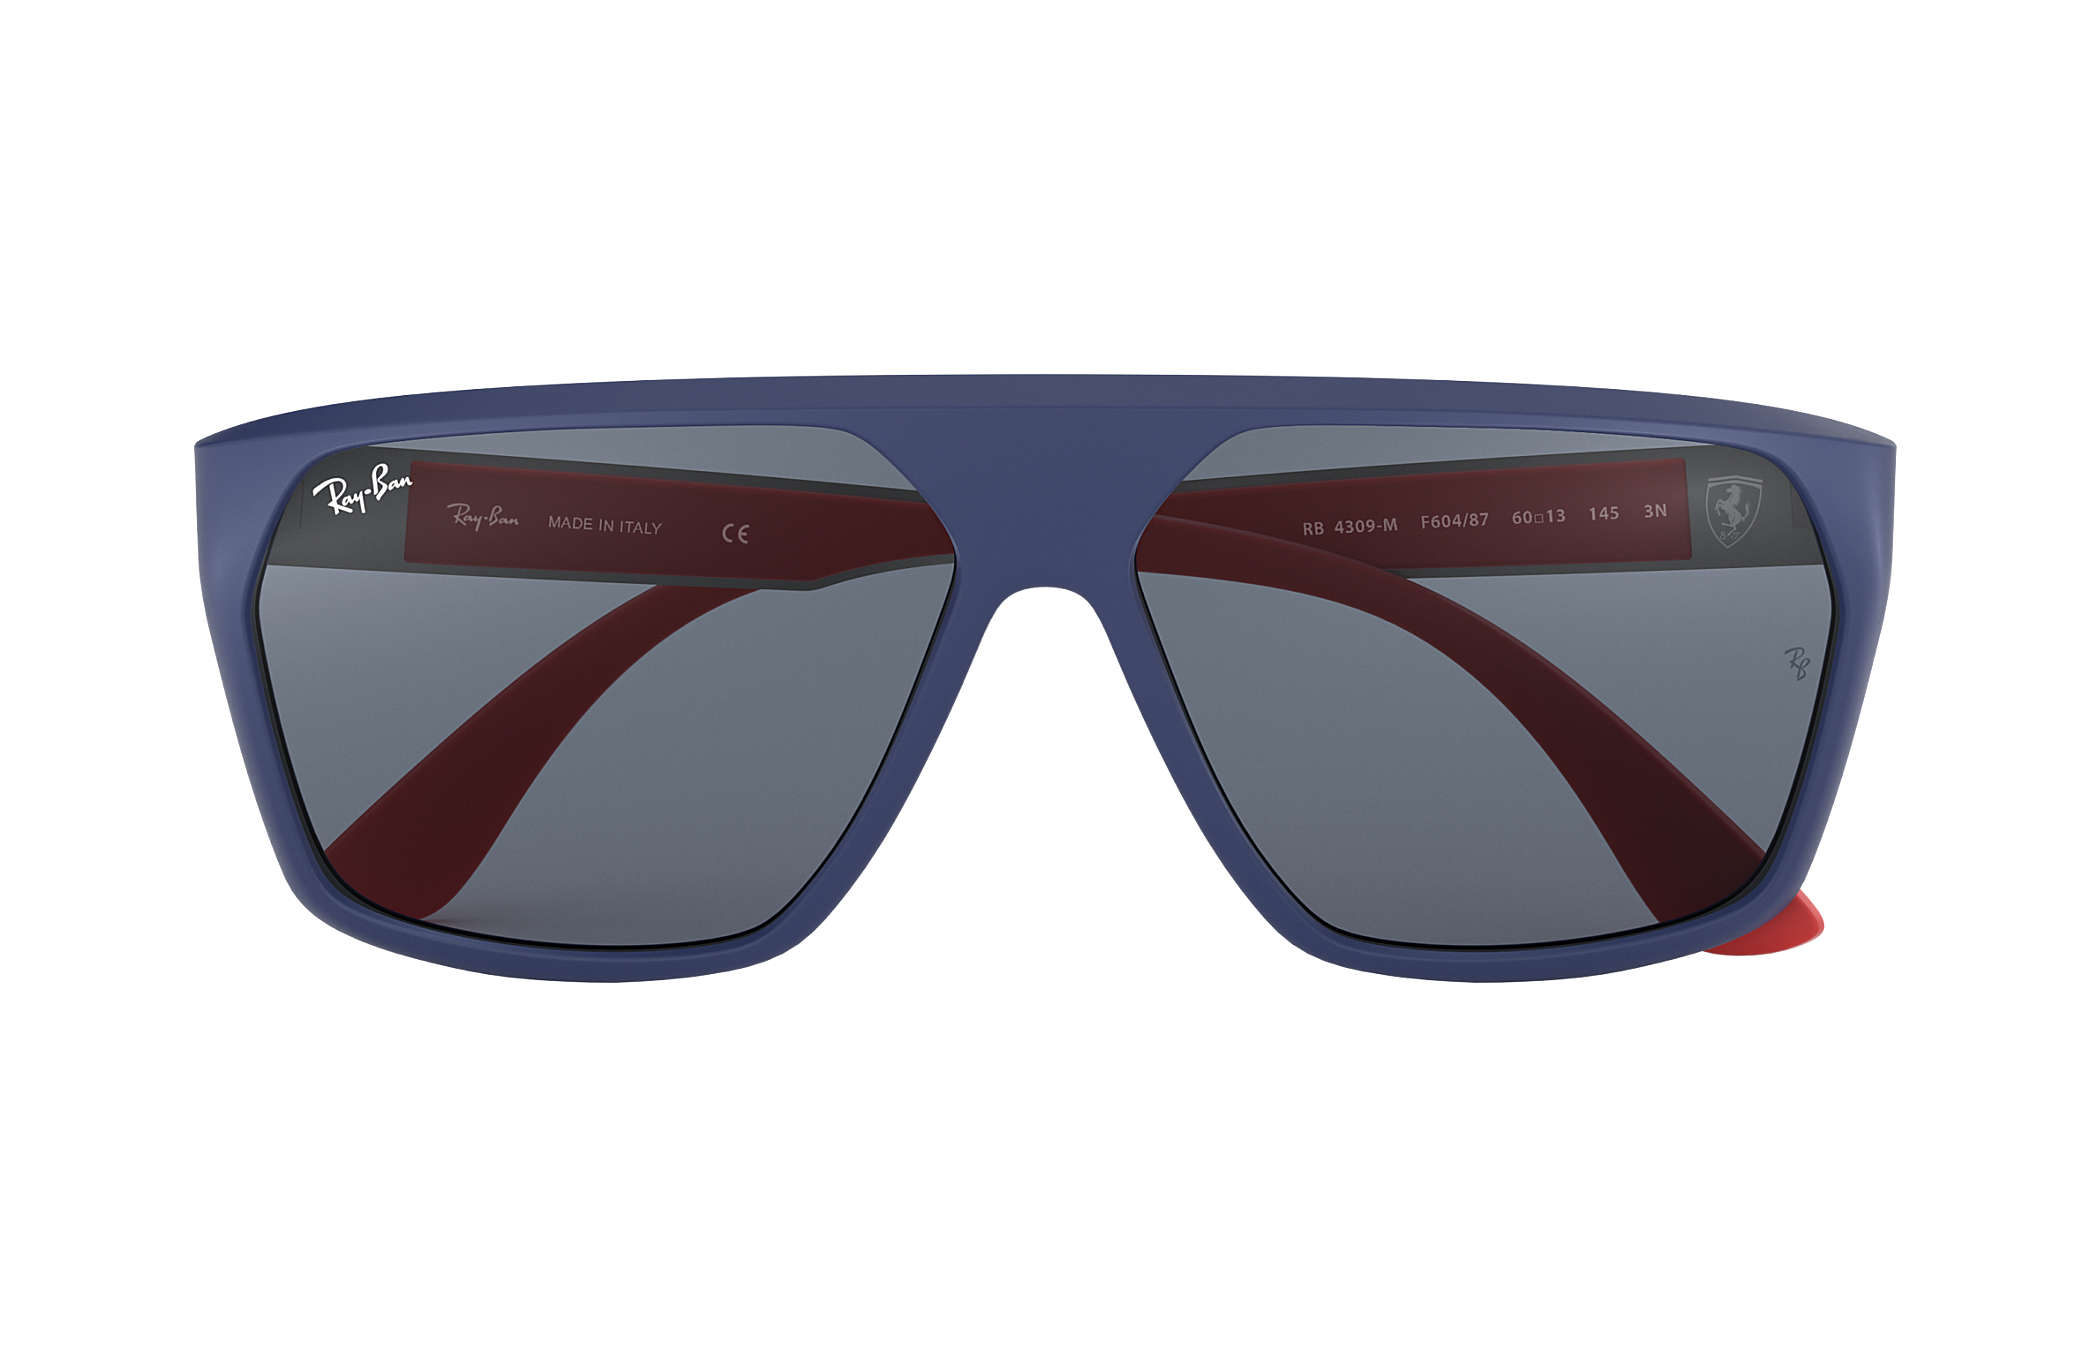 eac4b000ee ... Ray-Ban 0RB4309M-SCUDERIA FERRARI COLLECTION RB4309M Blue  Gunmetal